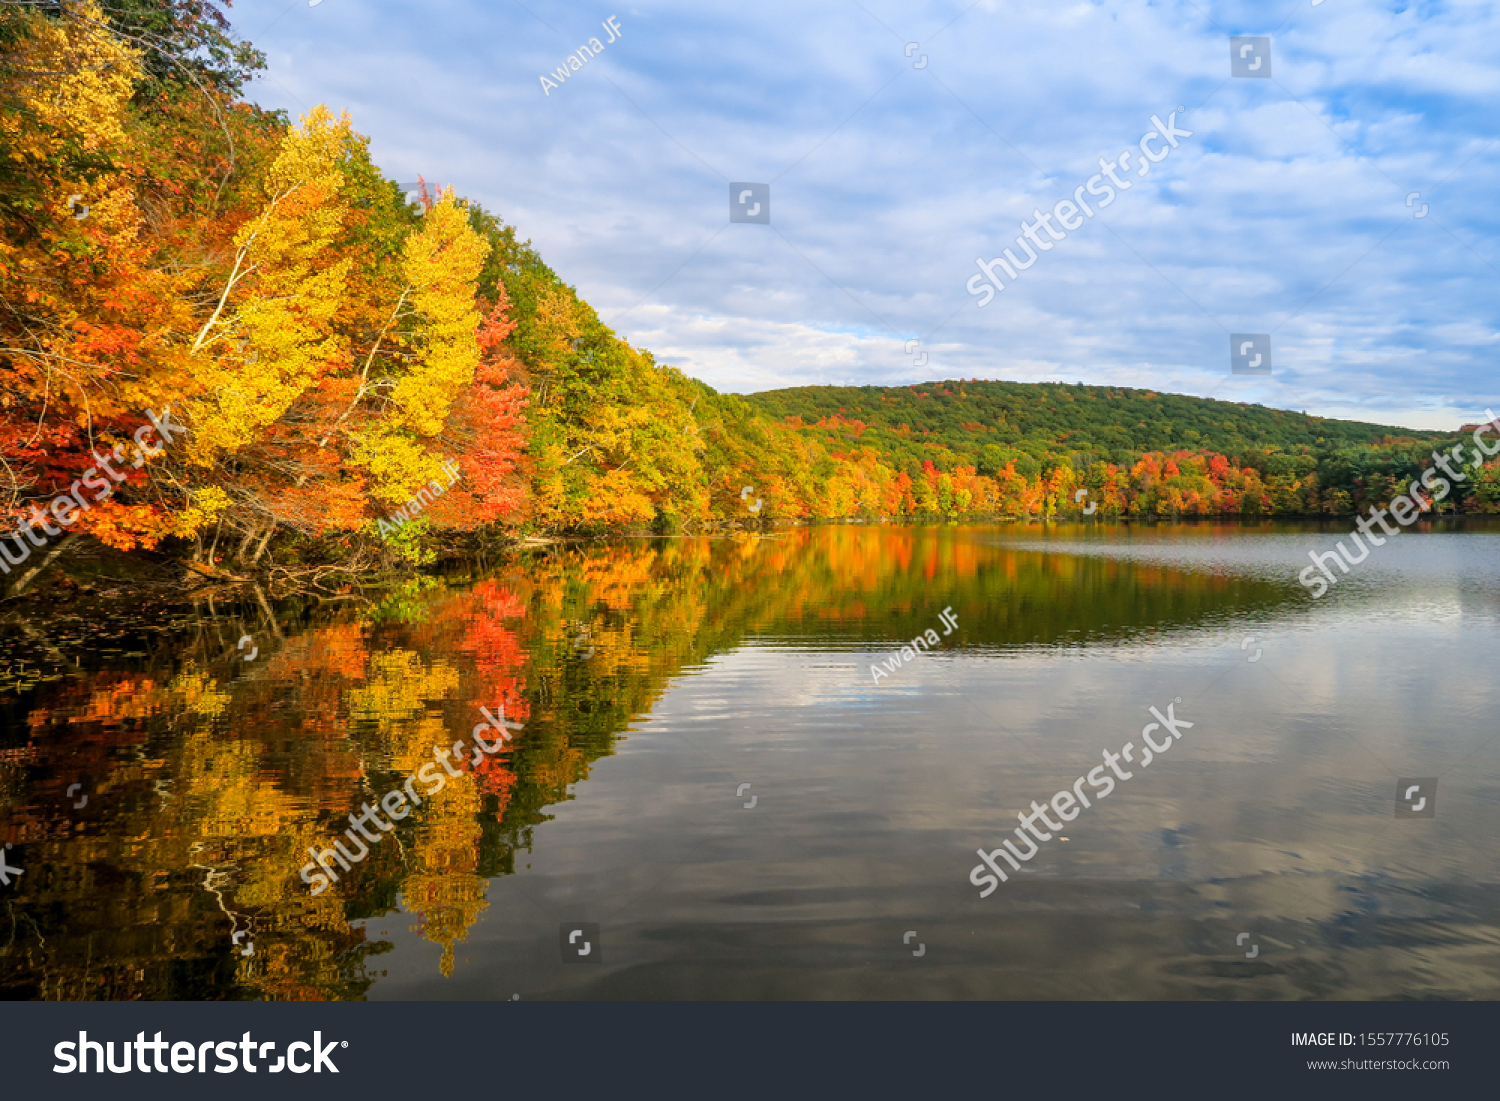 stock-photo-autumnal-view-of-a-peaceful-